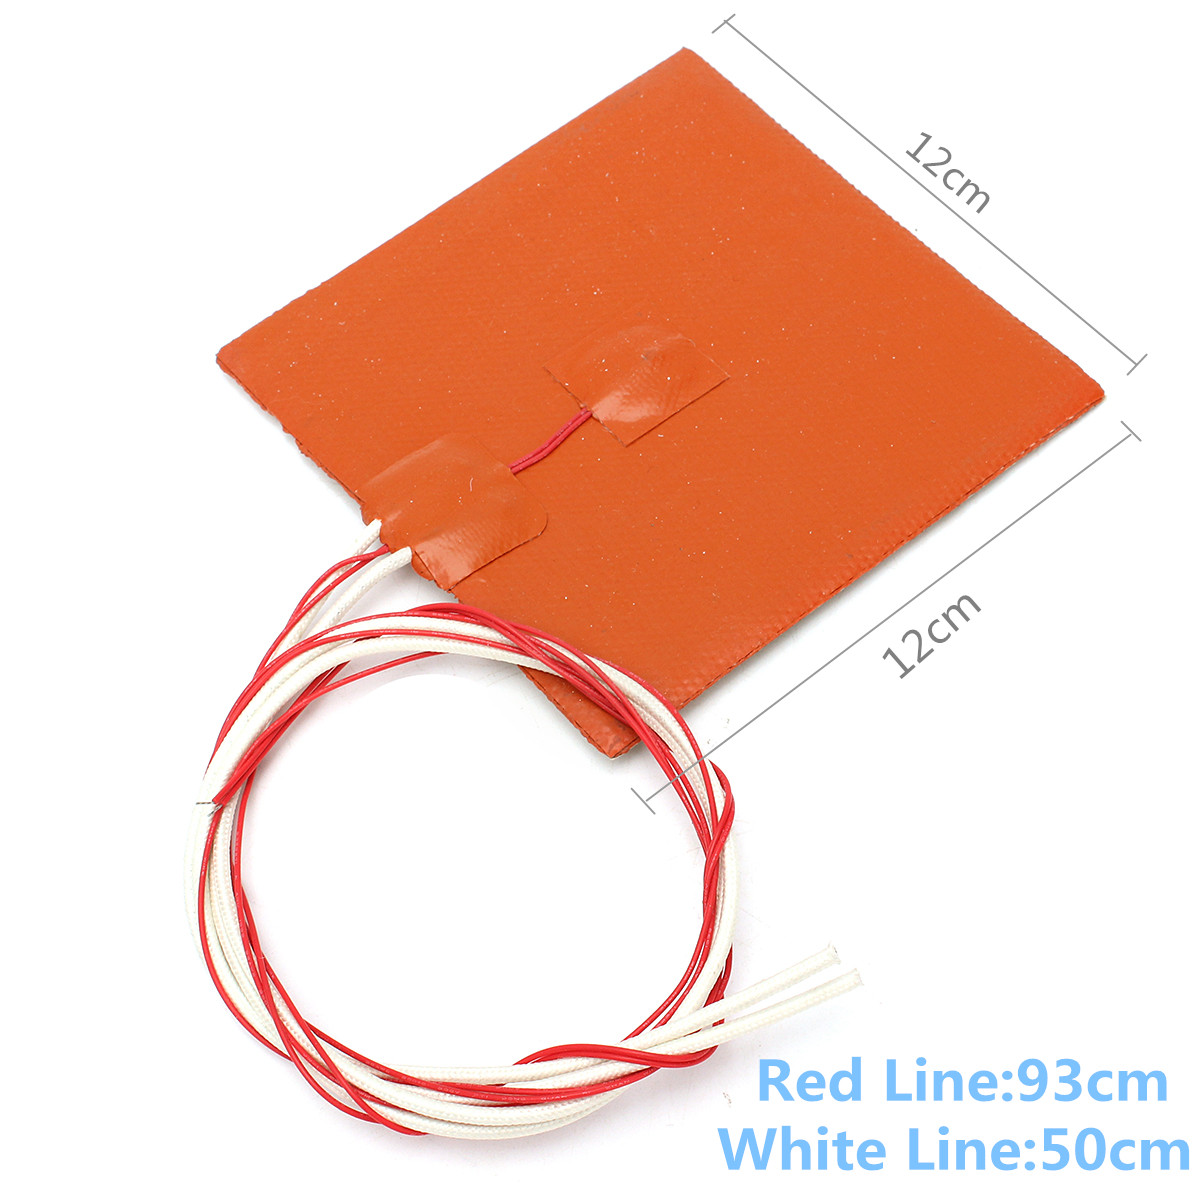 120x120mm 12V 120W Silicone Heater Pad 3D Printer Heated Bed Heating Mat